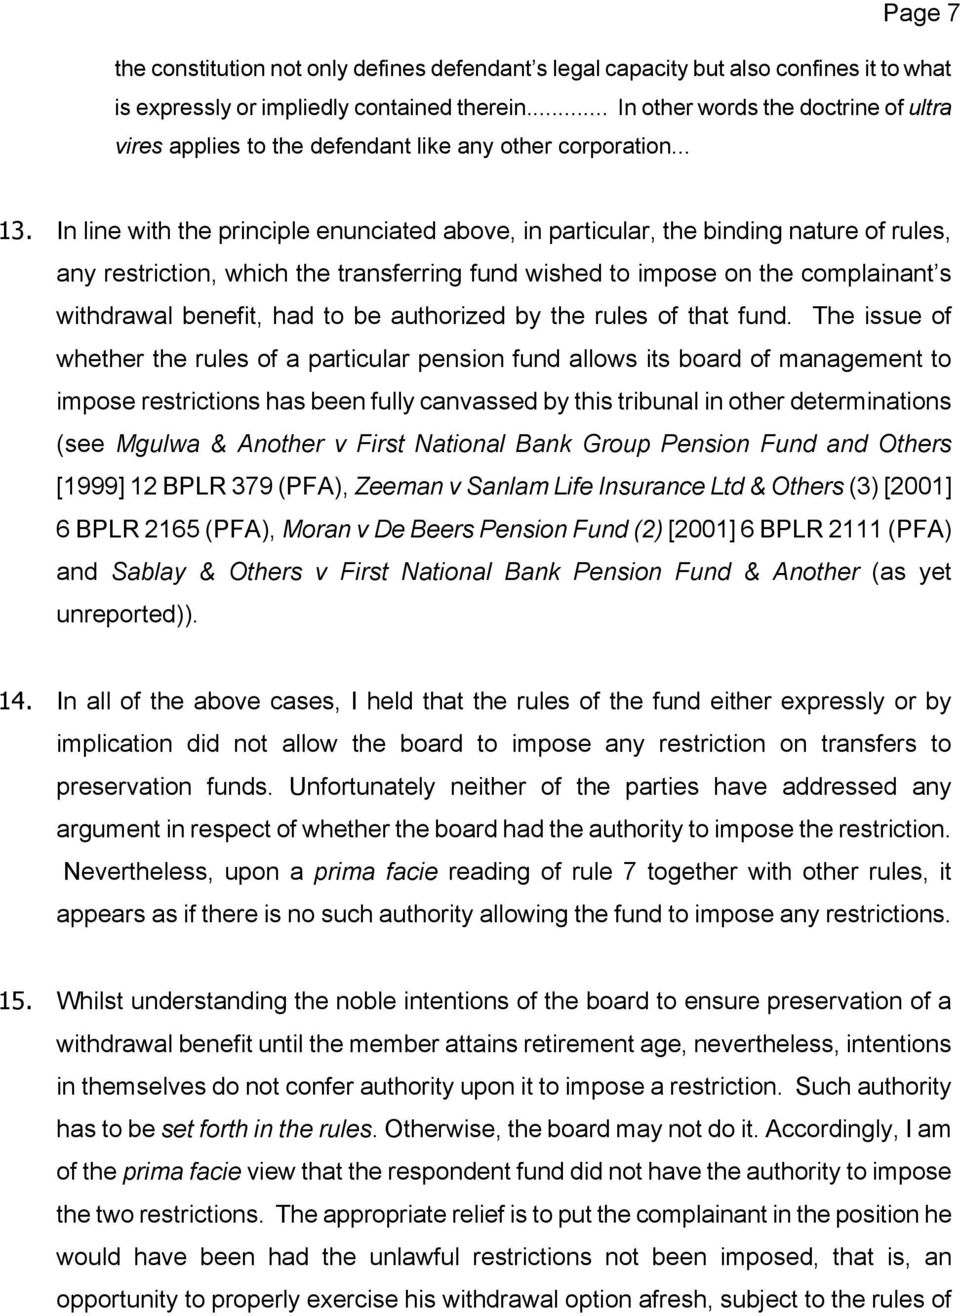 In line with the principle enunciated above, in particular, the binding nature of rules, any restriction, which the transferring fund wished to impose on the complainant s withdrawal benefit, had to